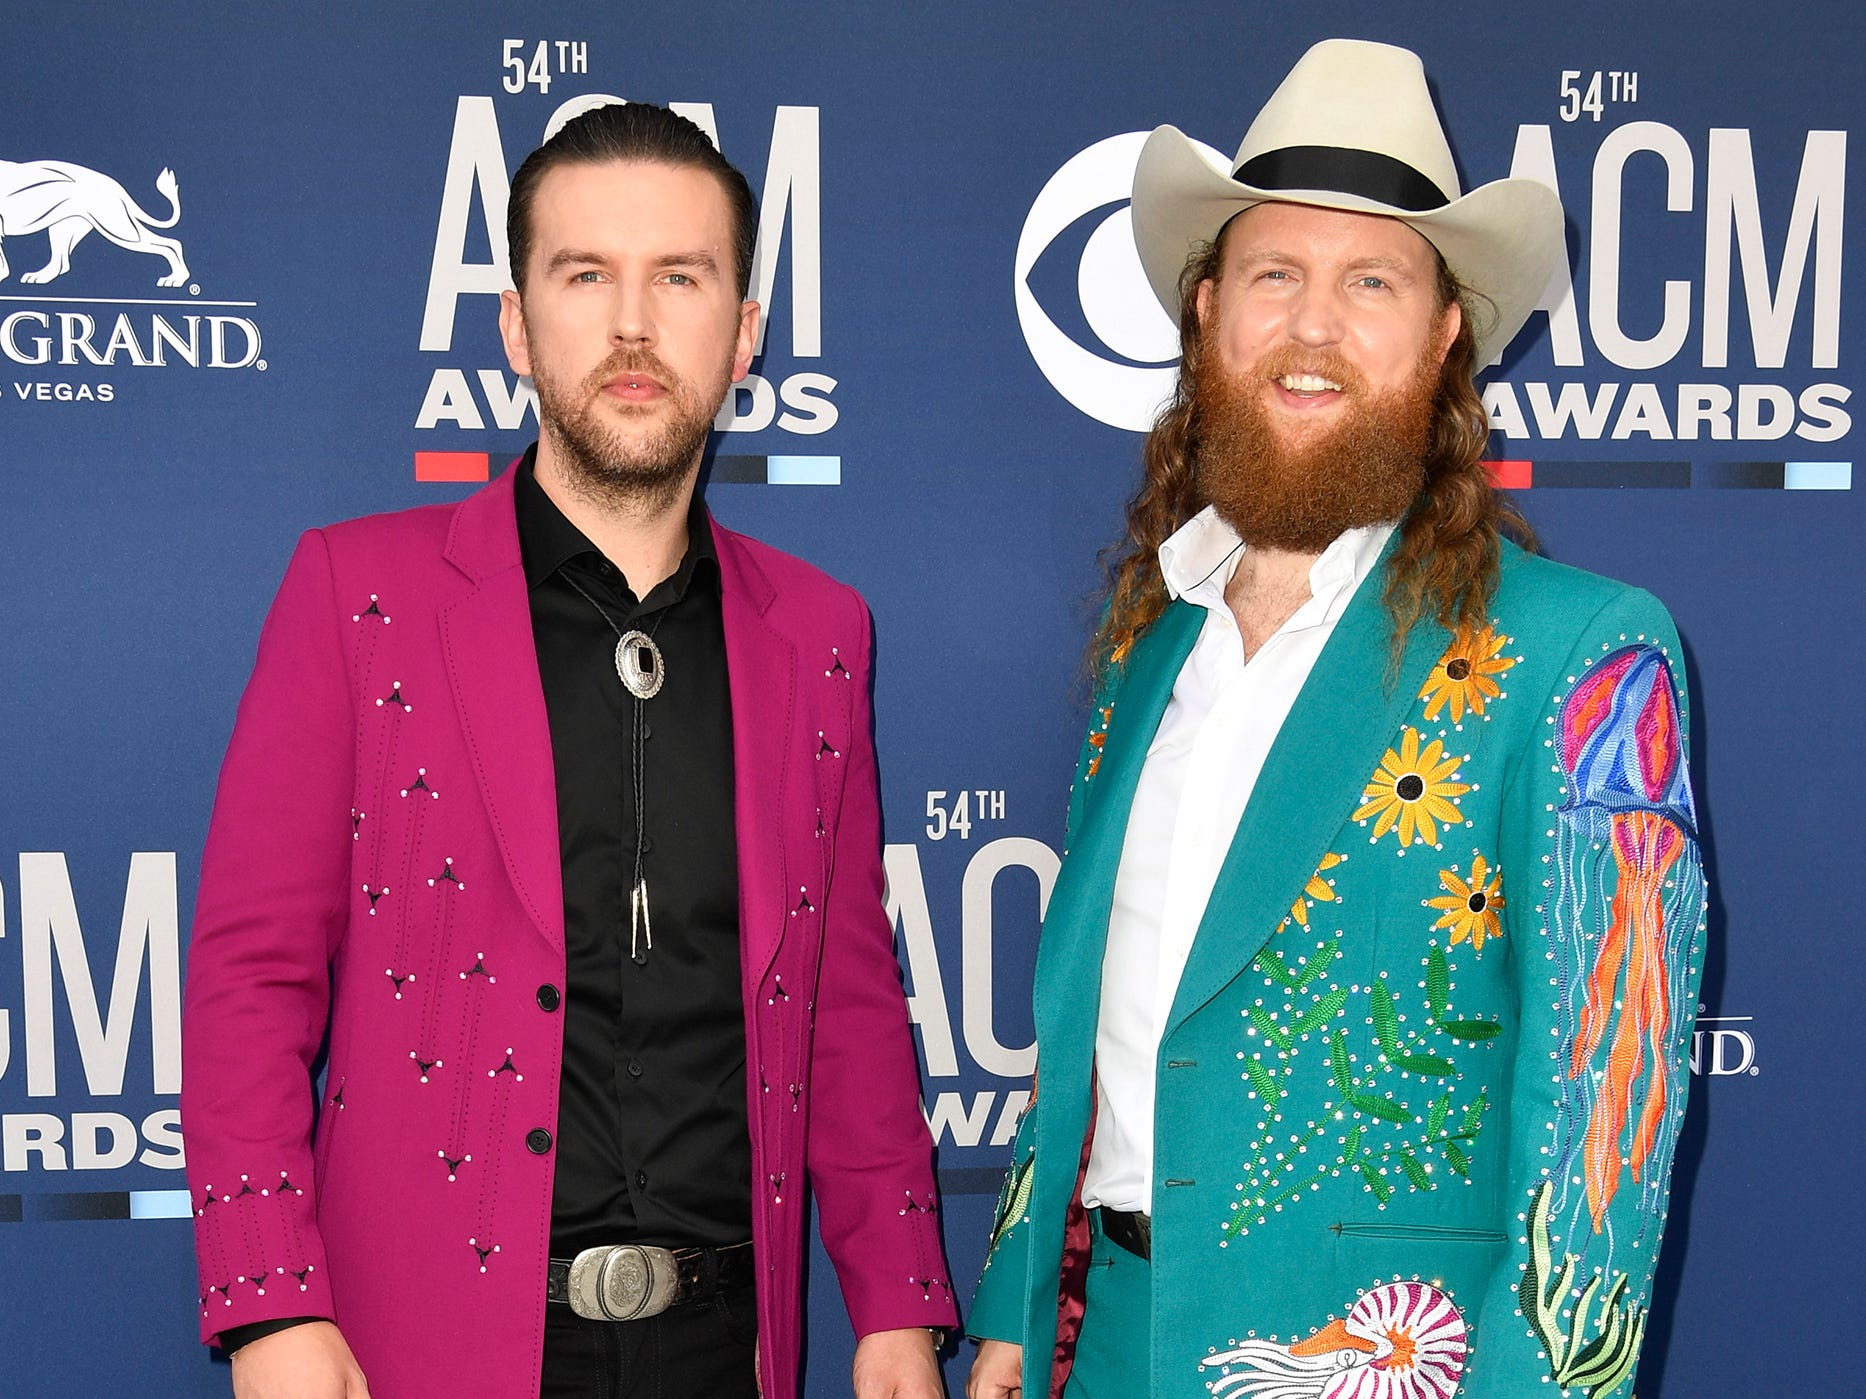 T.J. Osborne, left, and John Osborne of Brothers Osborne, walk the red carpet at the 54TH Academy of Country Music Awards Sunday, April 7, 2019, in Las Vegas, Nev.